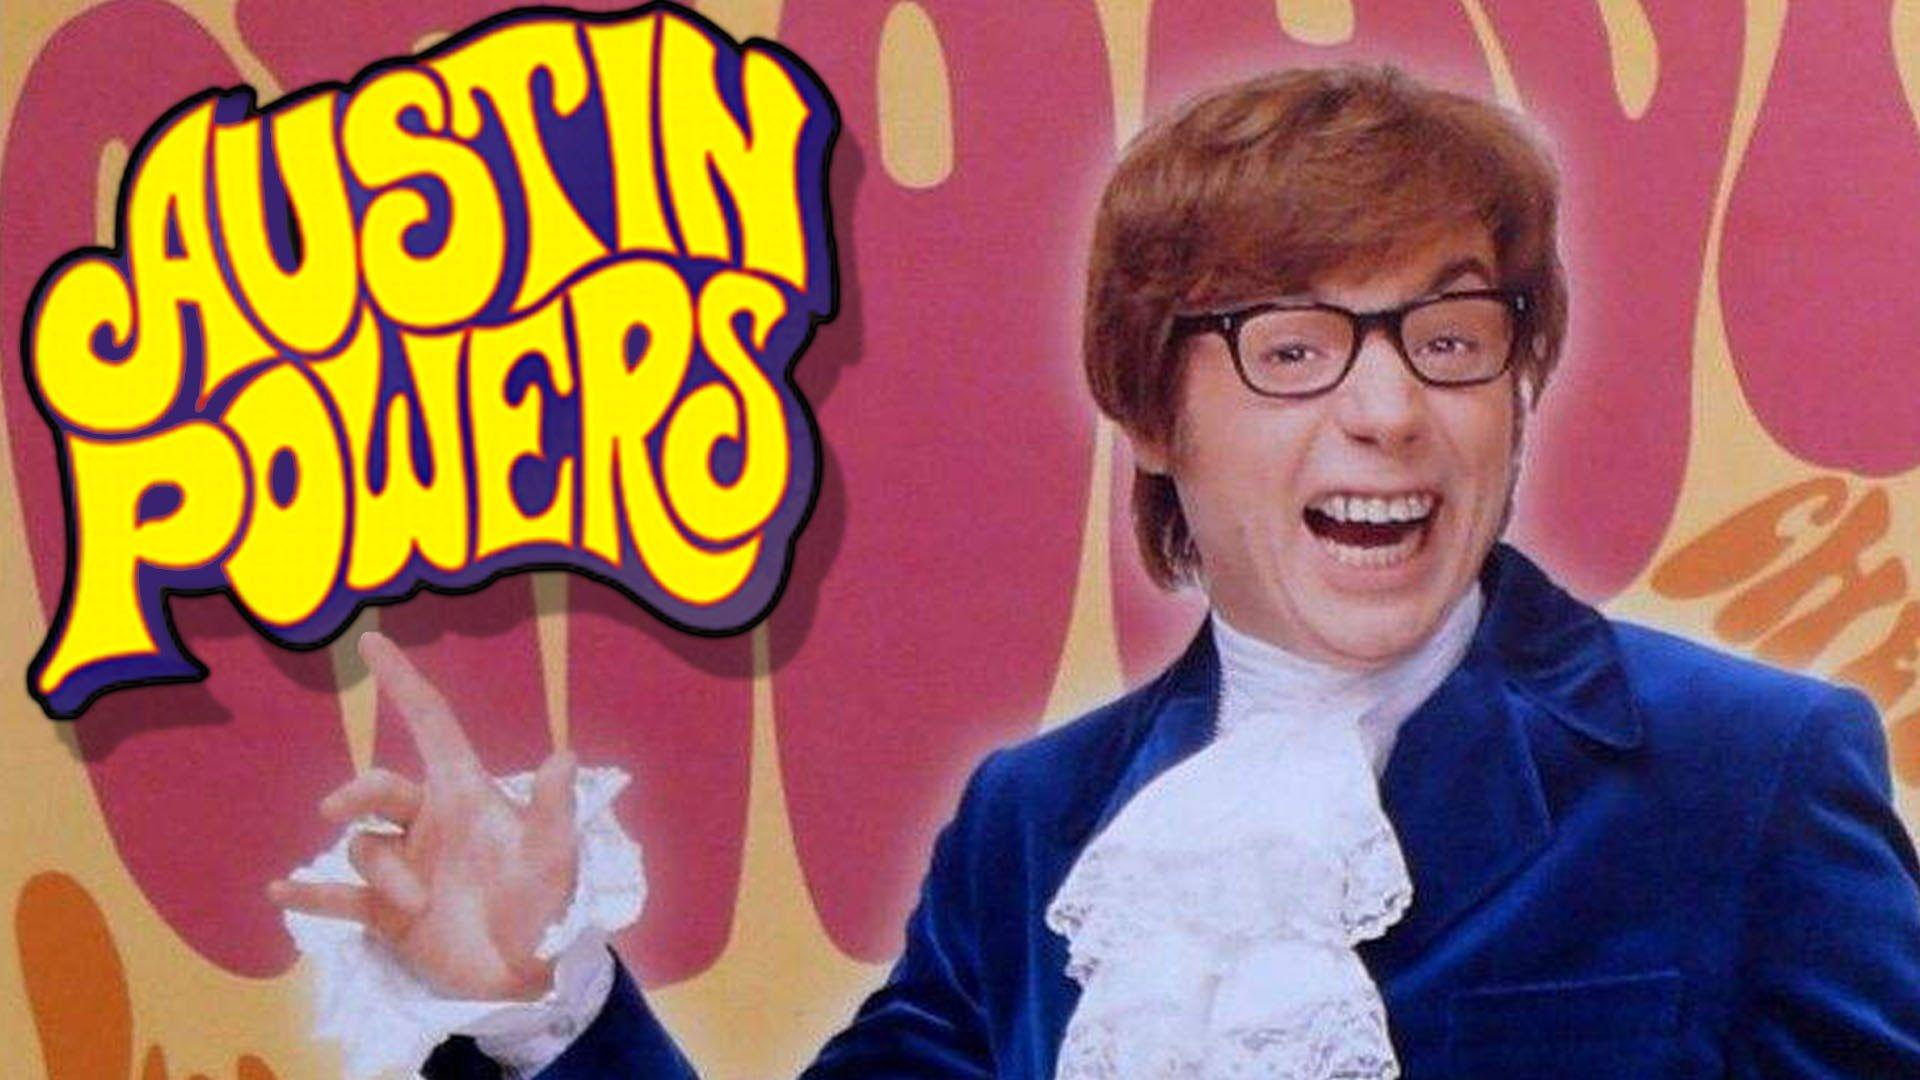 Austin Powers 4 Movie Wallpapers